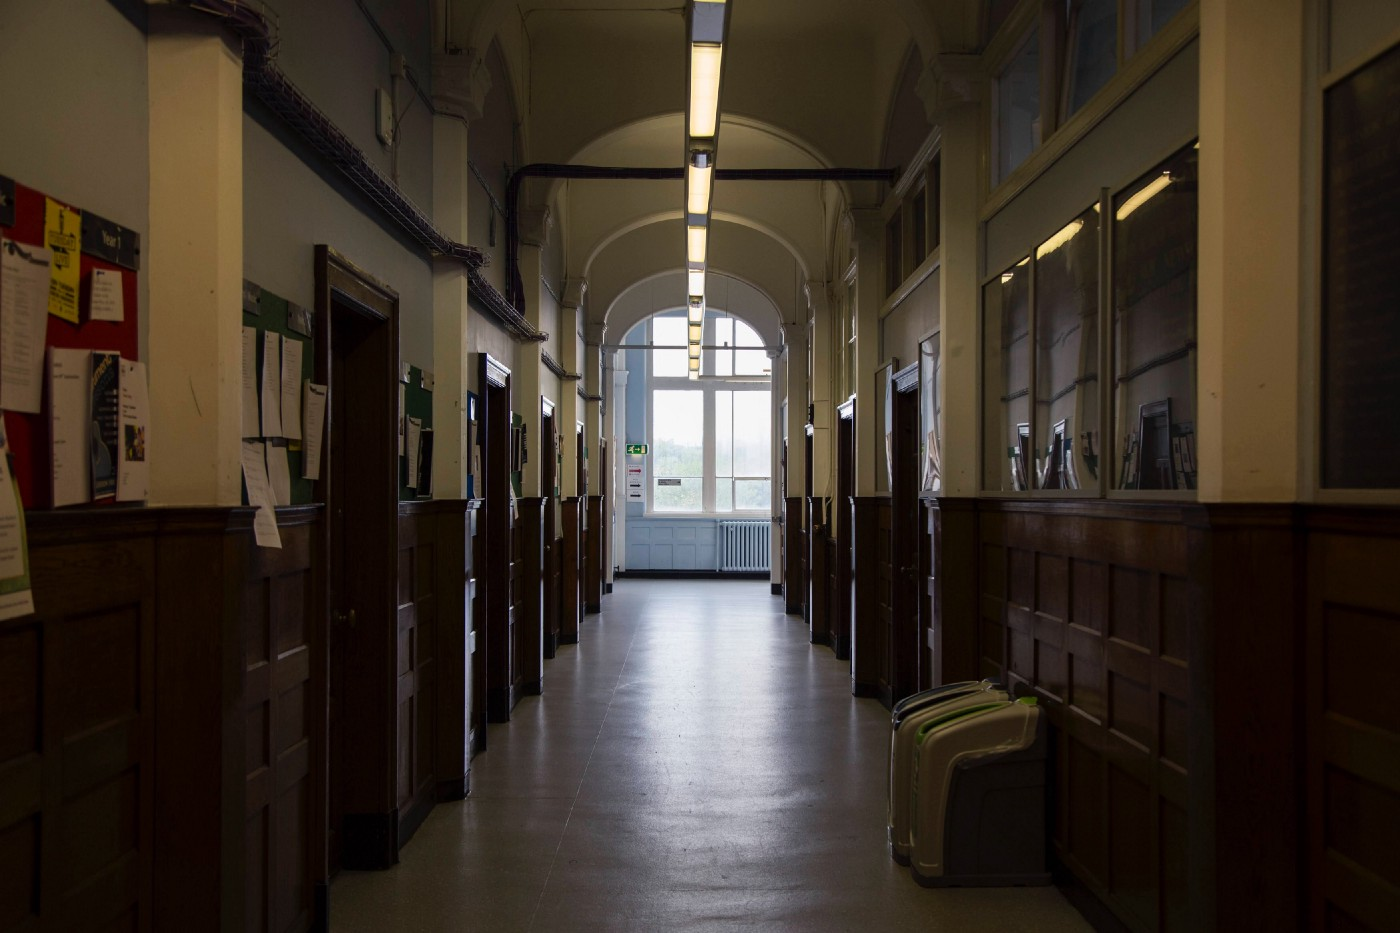 Photo of a dimly lit school hallway with a large window at the end of it.